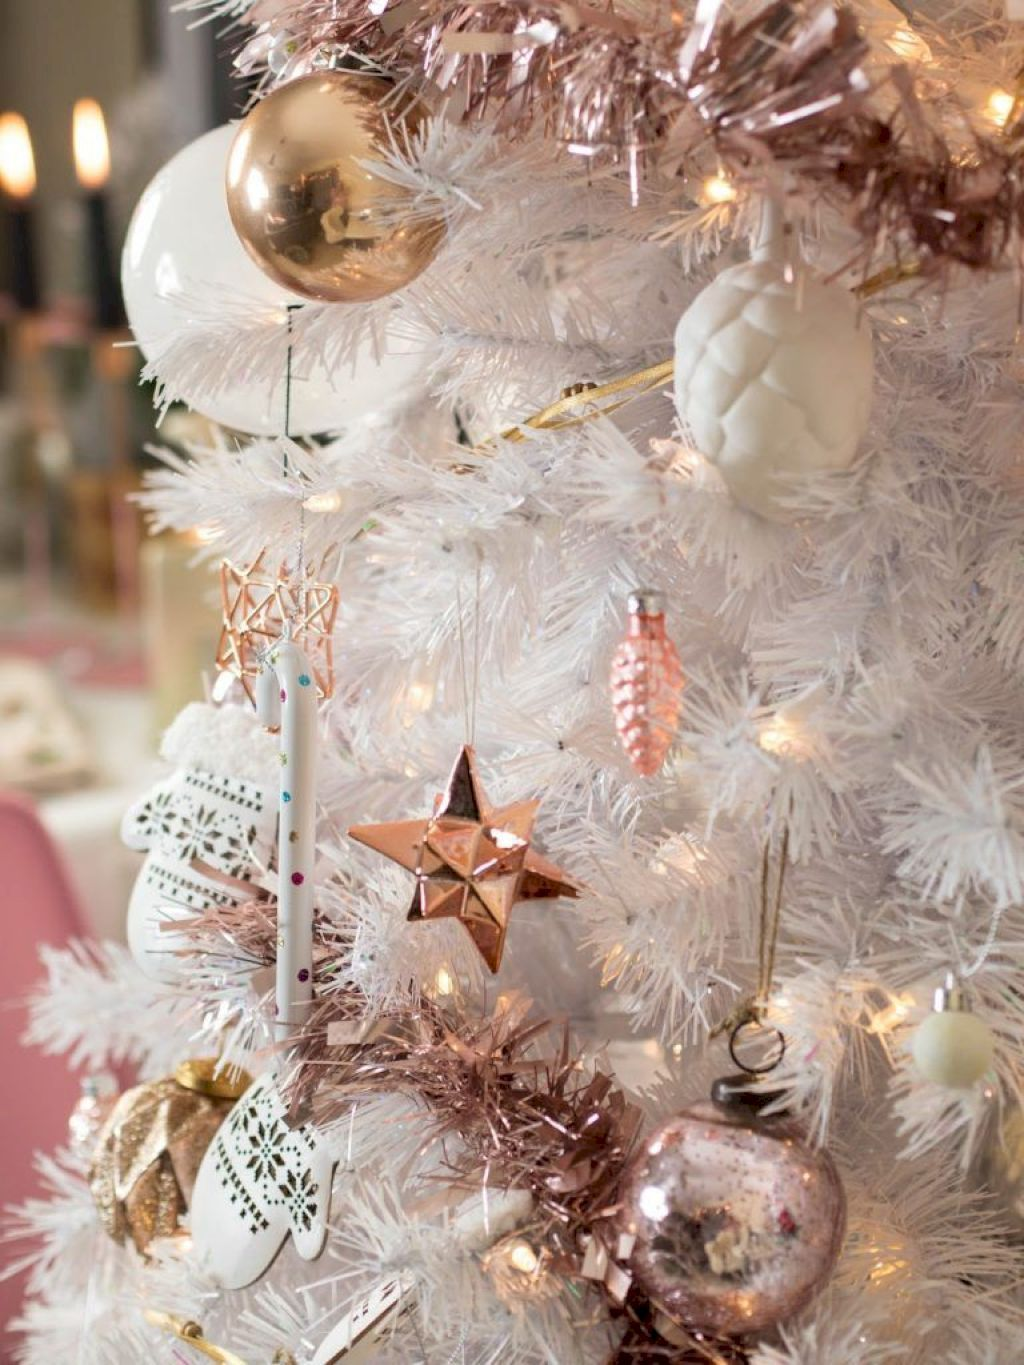 70 Awesome Christmas Apartment Decorating Ideas On A Budget Rose Gold Christmas Rose Gold Christmas Tree Christmas Apartment